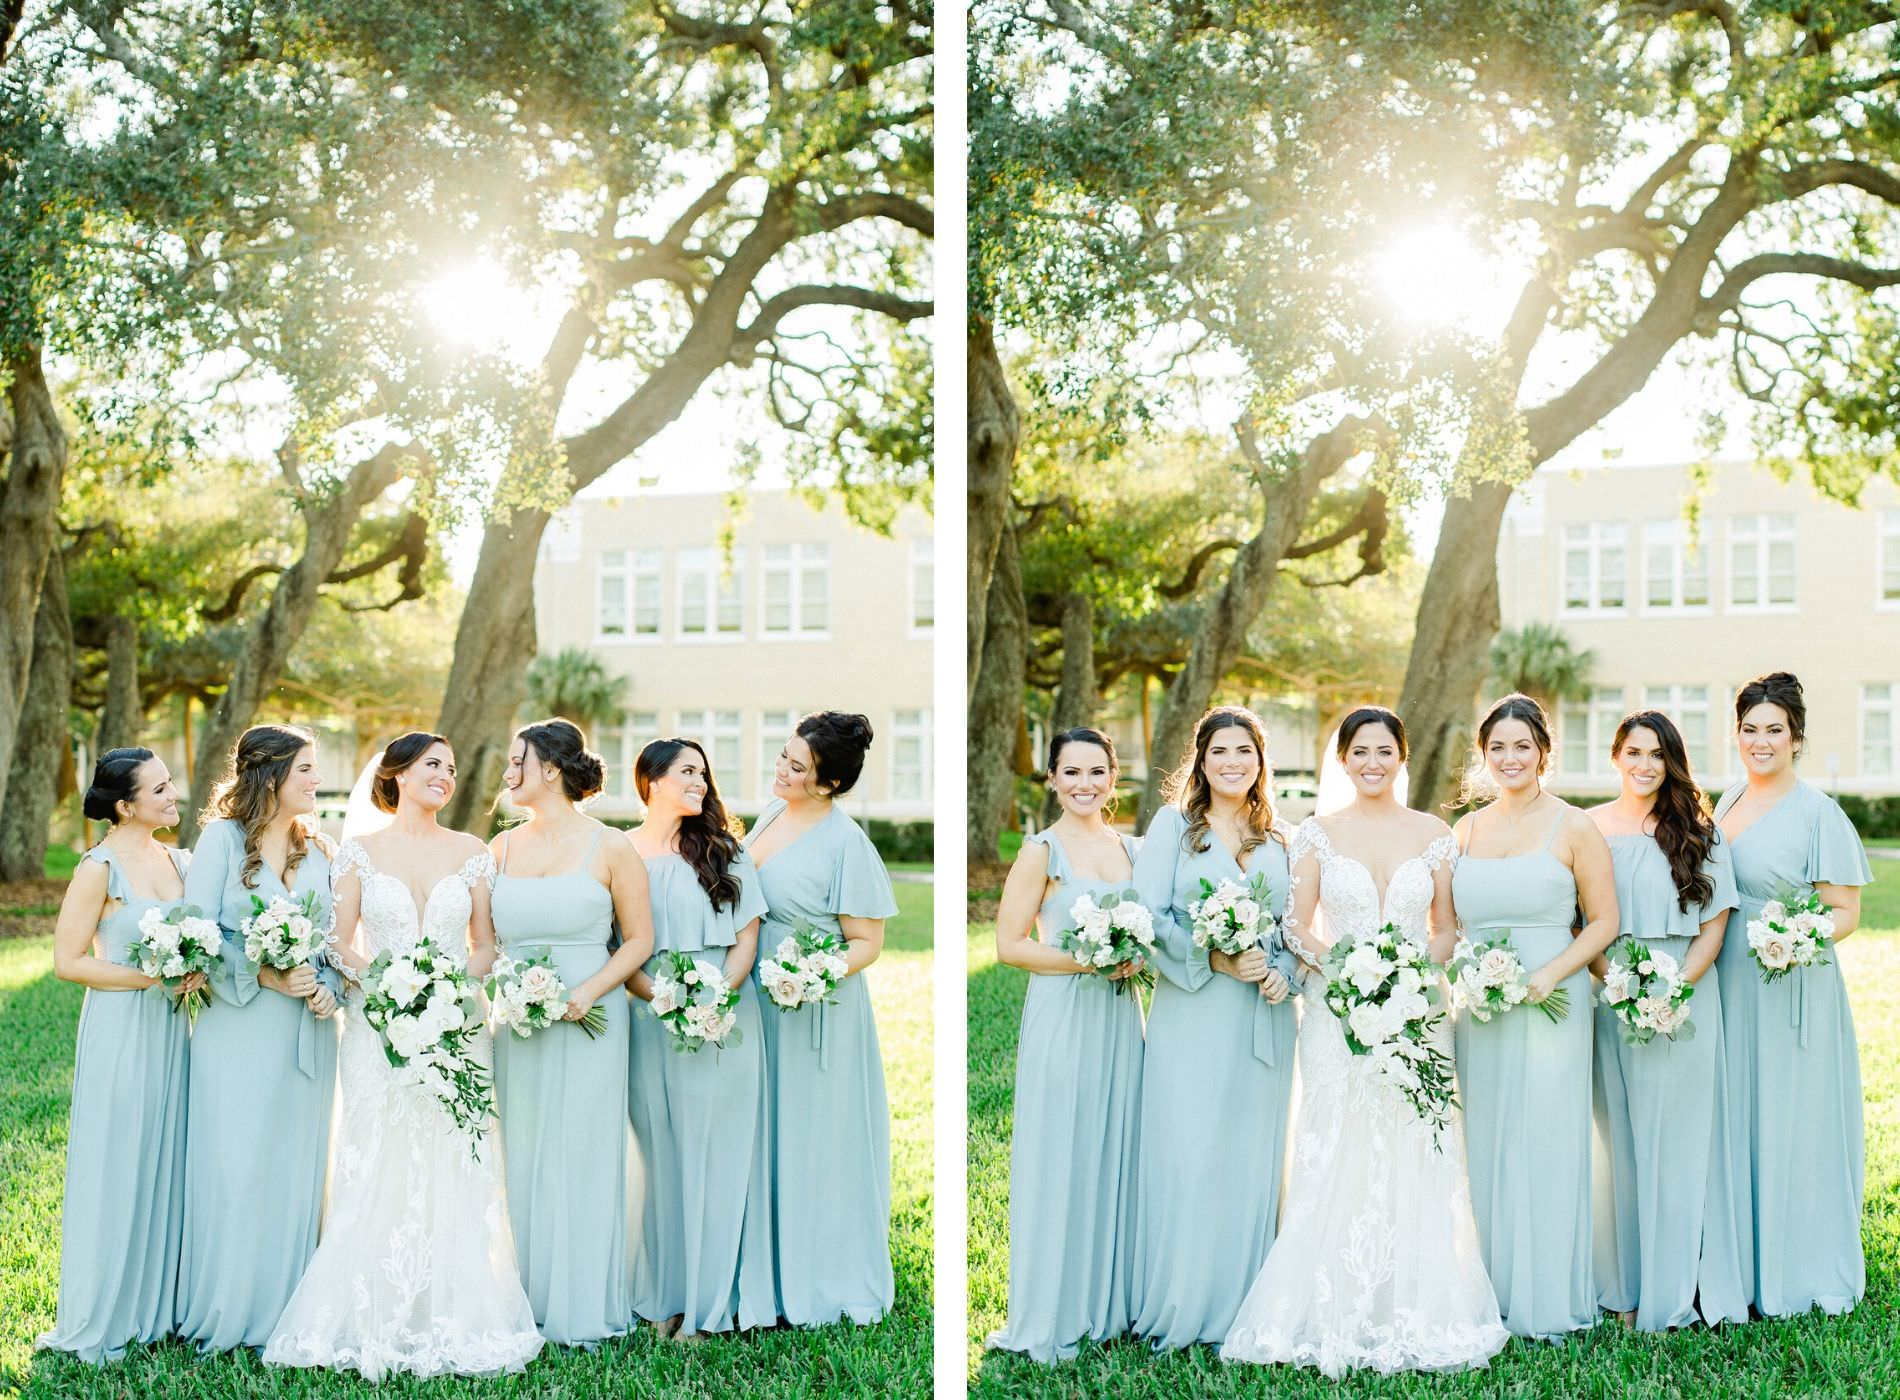 Tampa Bay Bride and Bridesmaids, Wearing Long Mix and Match Sage Show Me Your Mumu Bridesmaid Dresses, Holding Elegant White, Blush Pink and Ivory Floral Bouquets, In Front of South Tampa's All Saints Academy | Tampa Bay Wedding Planner Breezin' Weddings